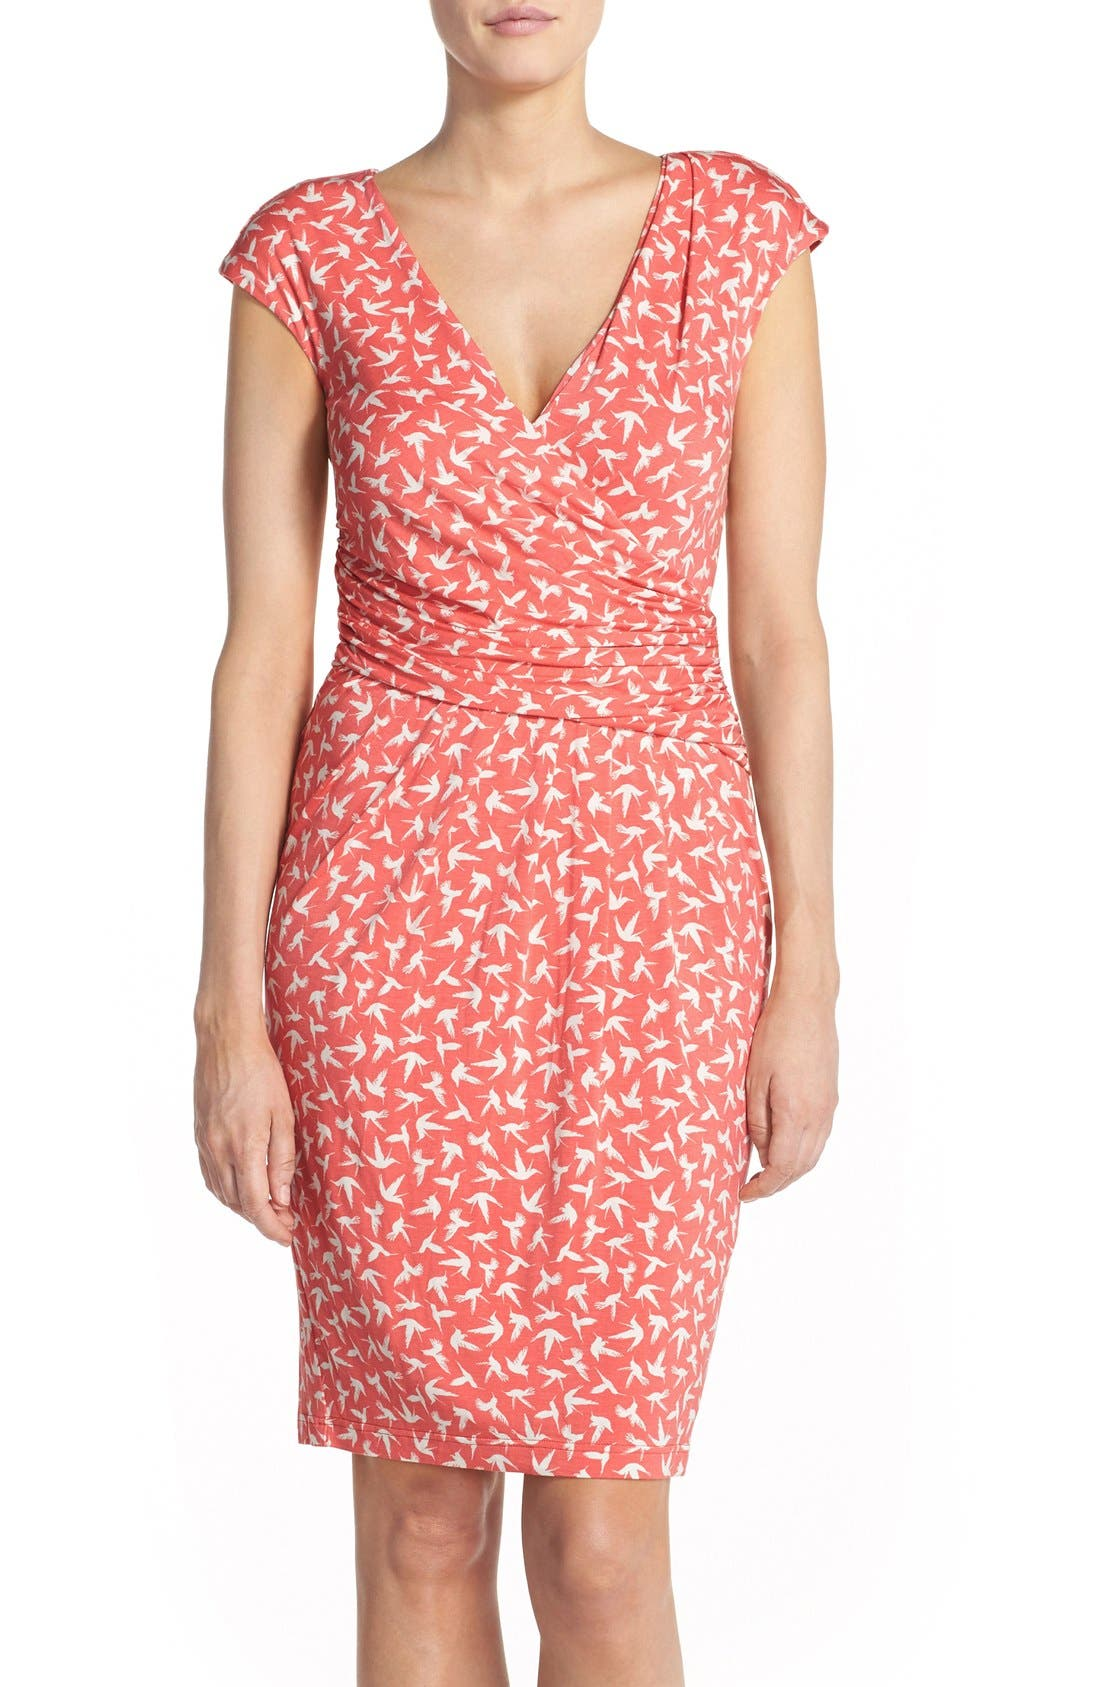 Main Image - Adrianna Papell Bird Print Knit Sheath Dress